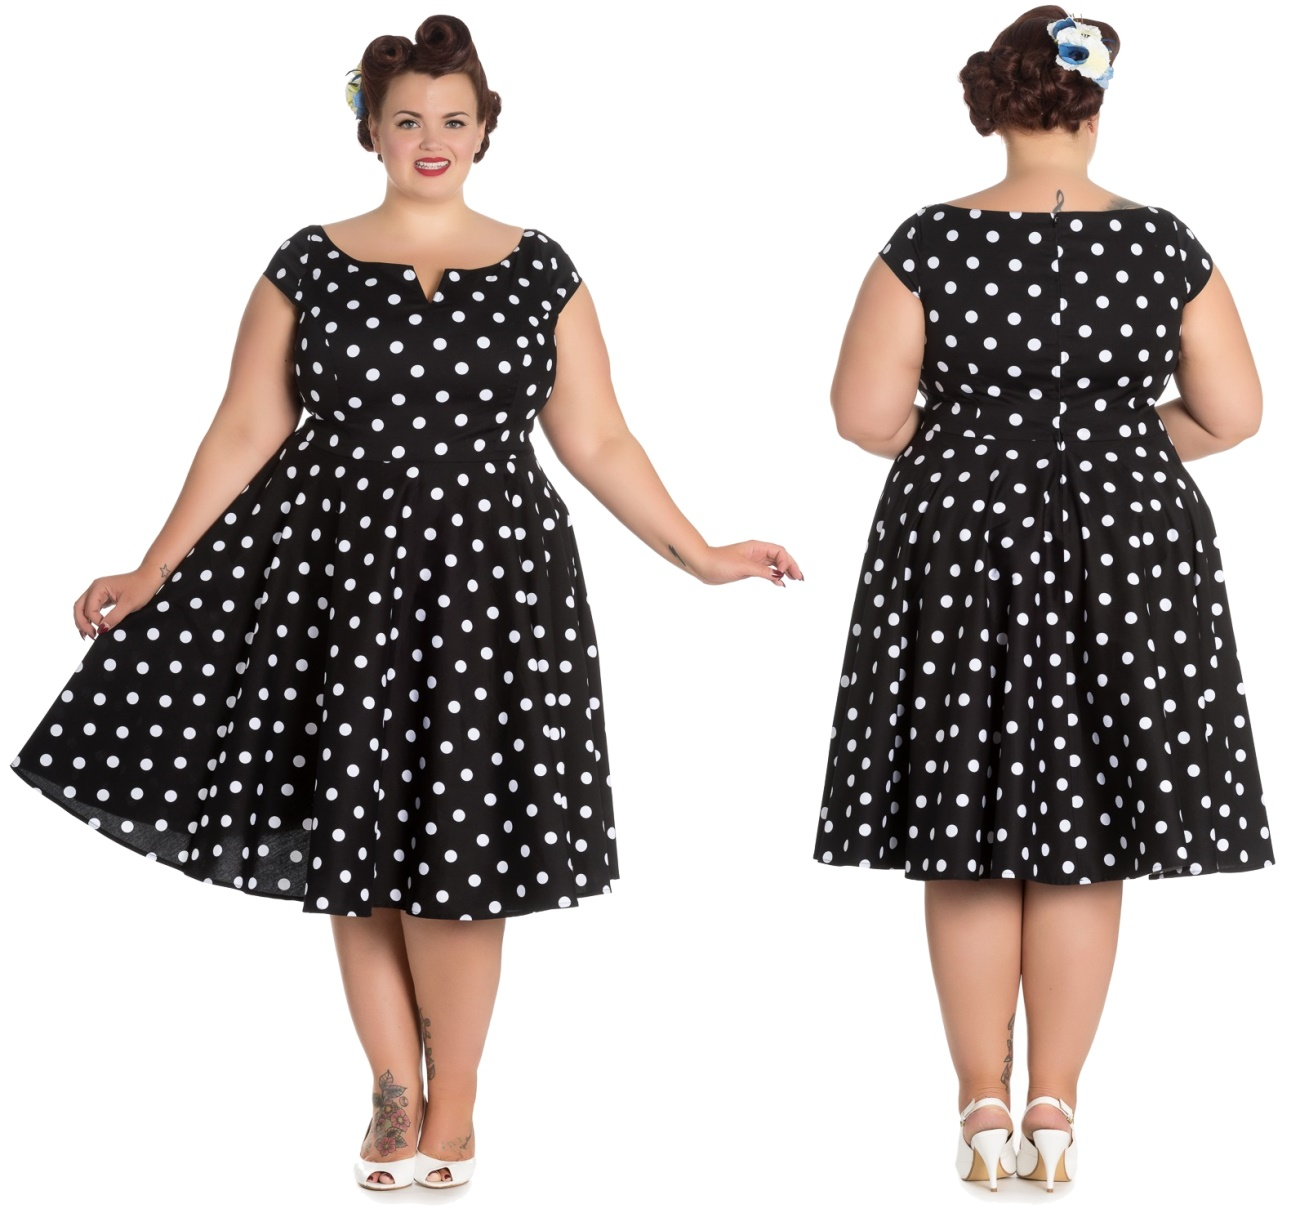 3b1418847180 Nicky Dress Rockn Roll Kleid Rockabilly Kleid Hellbunny Plus - Hellbunny  bei Army Shop - www.armydepot-chemnitz.de